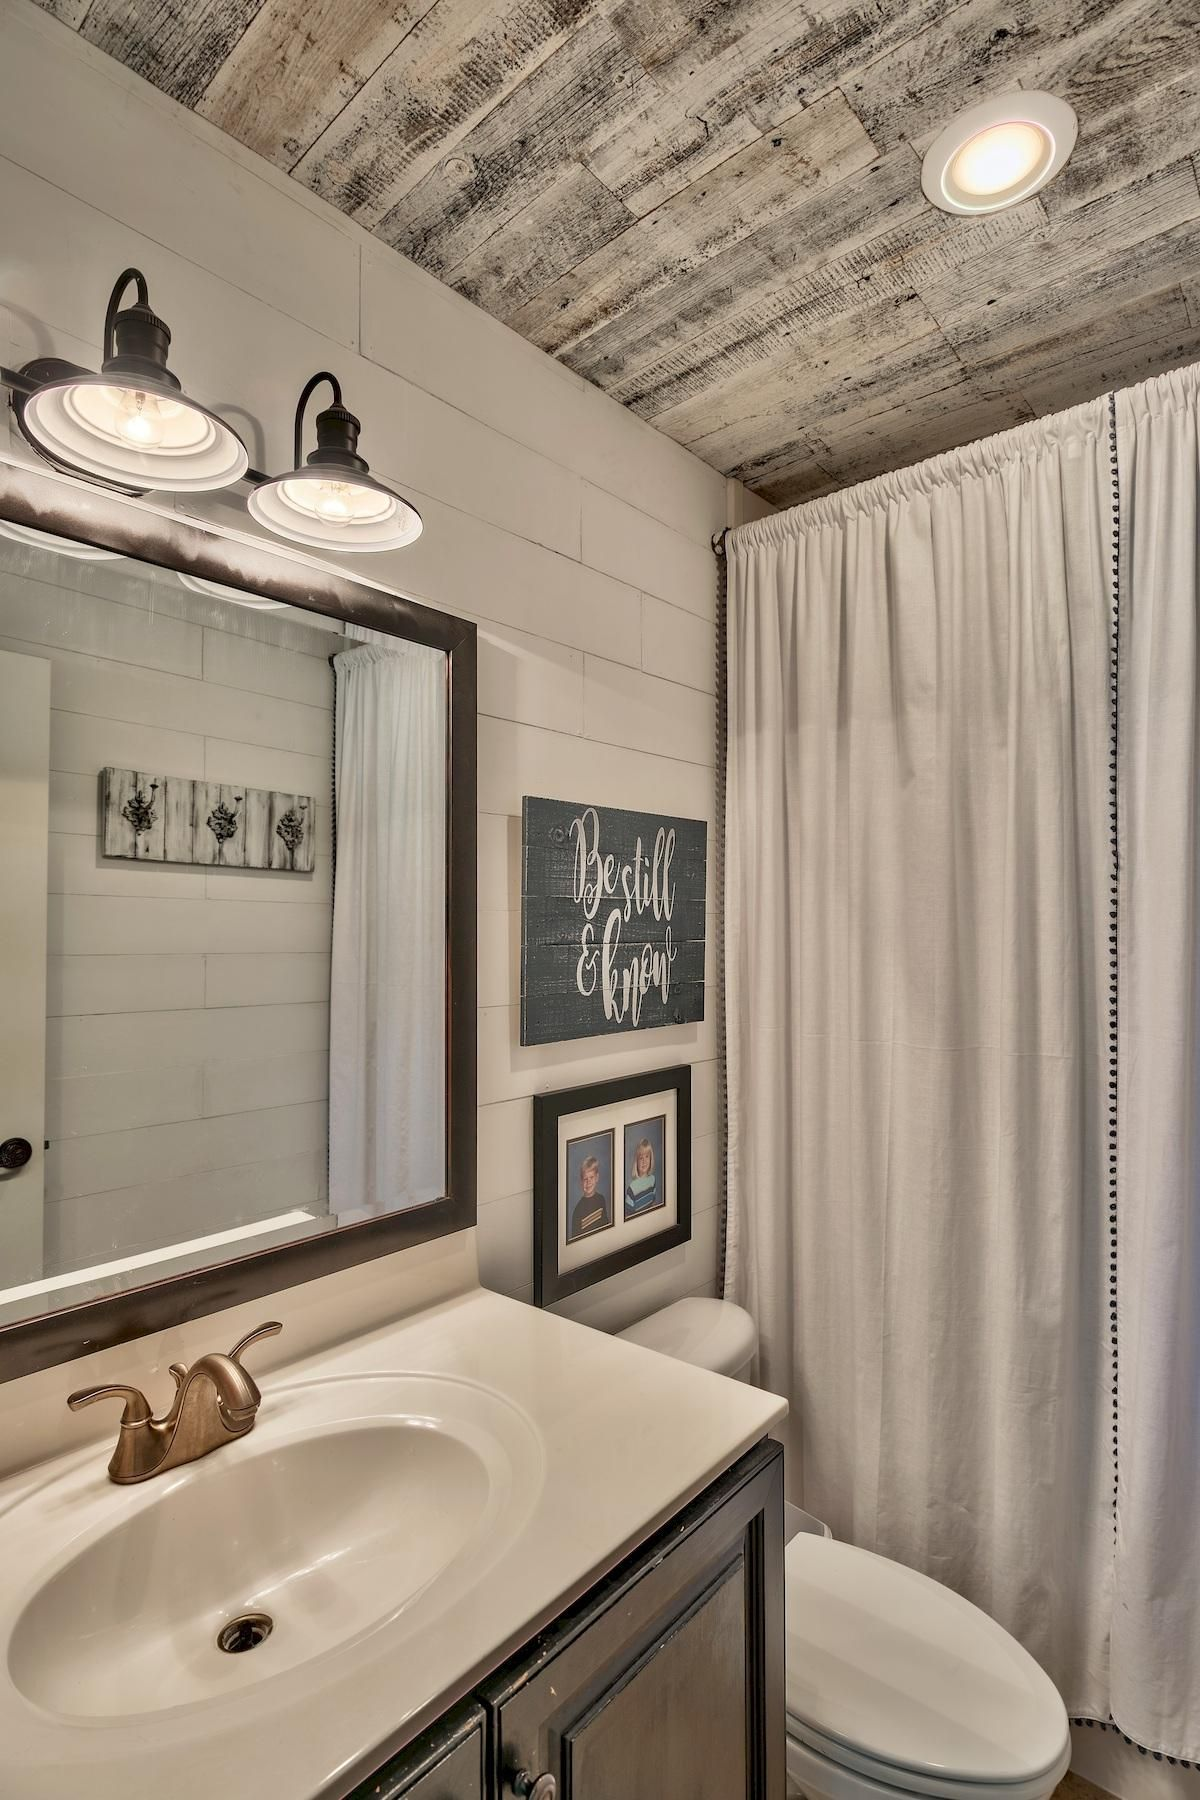 Bathroom Remodel With Stikwood: Shiplap Walls With Stinkwood Ceiling Make For A Modern